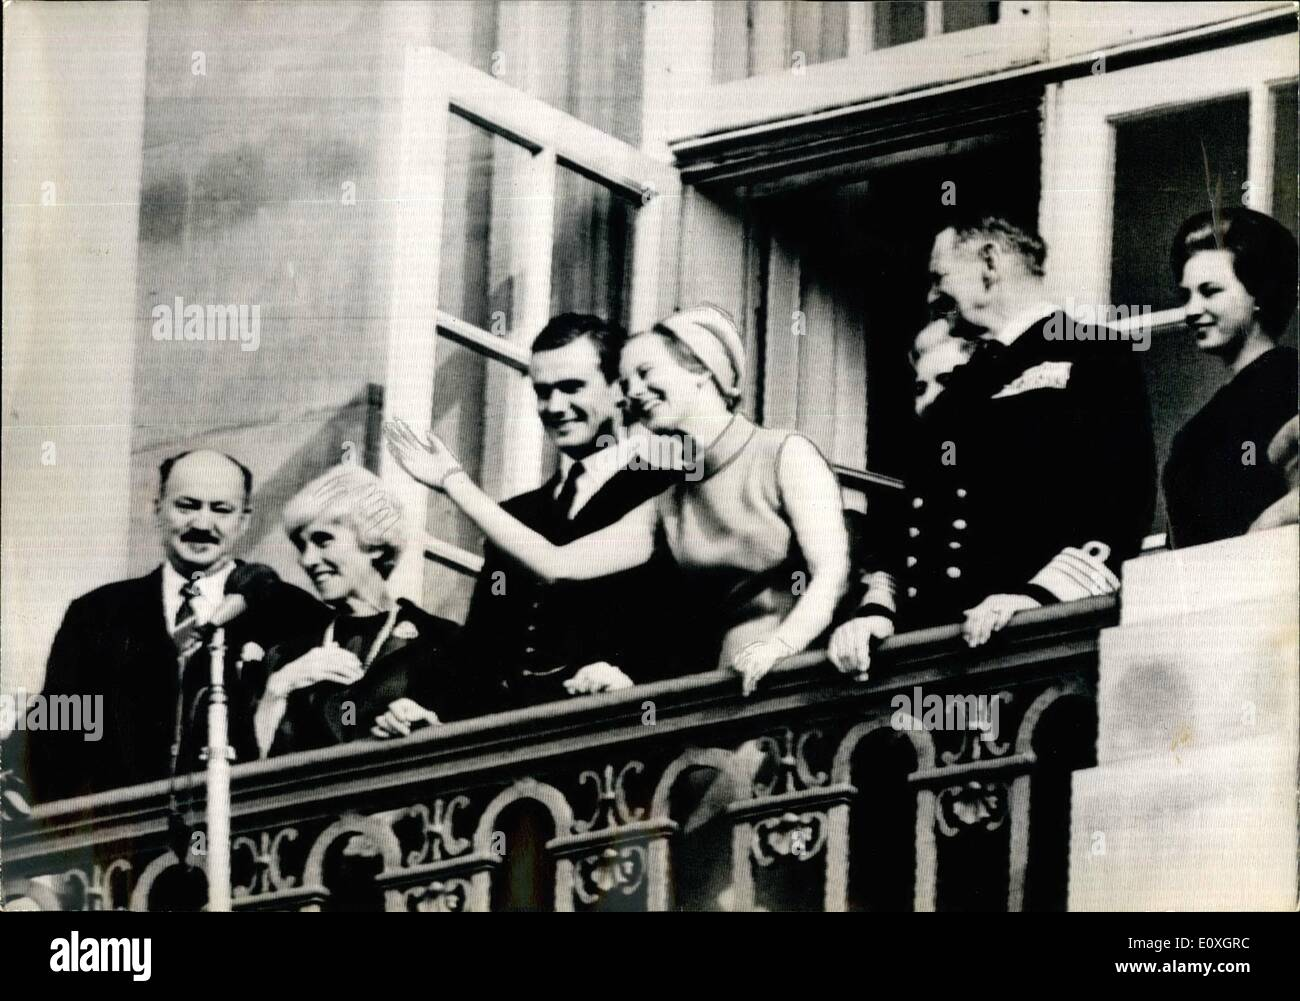 Oct. 10, 1966 - Official Announcement of Princess Margarethe's engagement: The official announcement of the engagement of Princess Margarethe, Heiress to the Dutch throne, and the French count Henri De Monpezat took place in Copenhagen today. Photo shows on the balcony of the Amalienborg Castle from left to right: Count and Countess De Monpezat, Bridegroom's parents, Count Henri and Princess Margarethe, King Frederick, Queen Ingrid (half hidden) and Princess Benedikte. - Stock Image